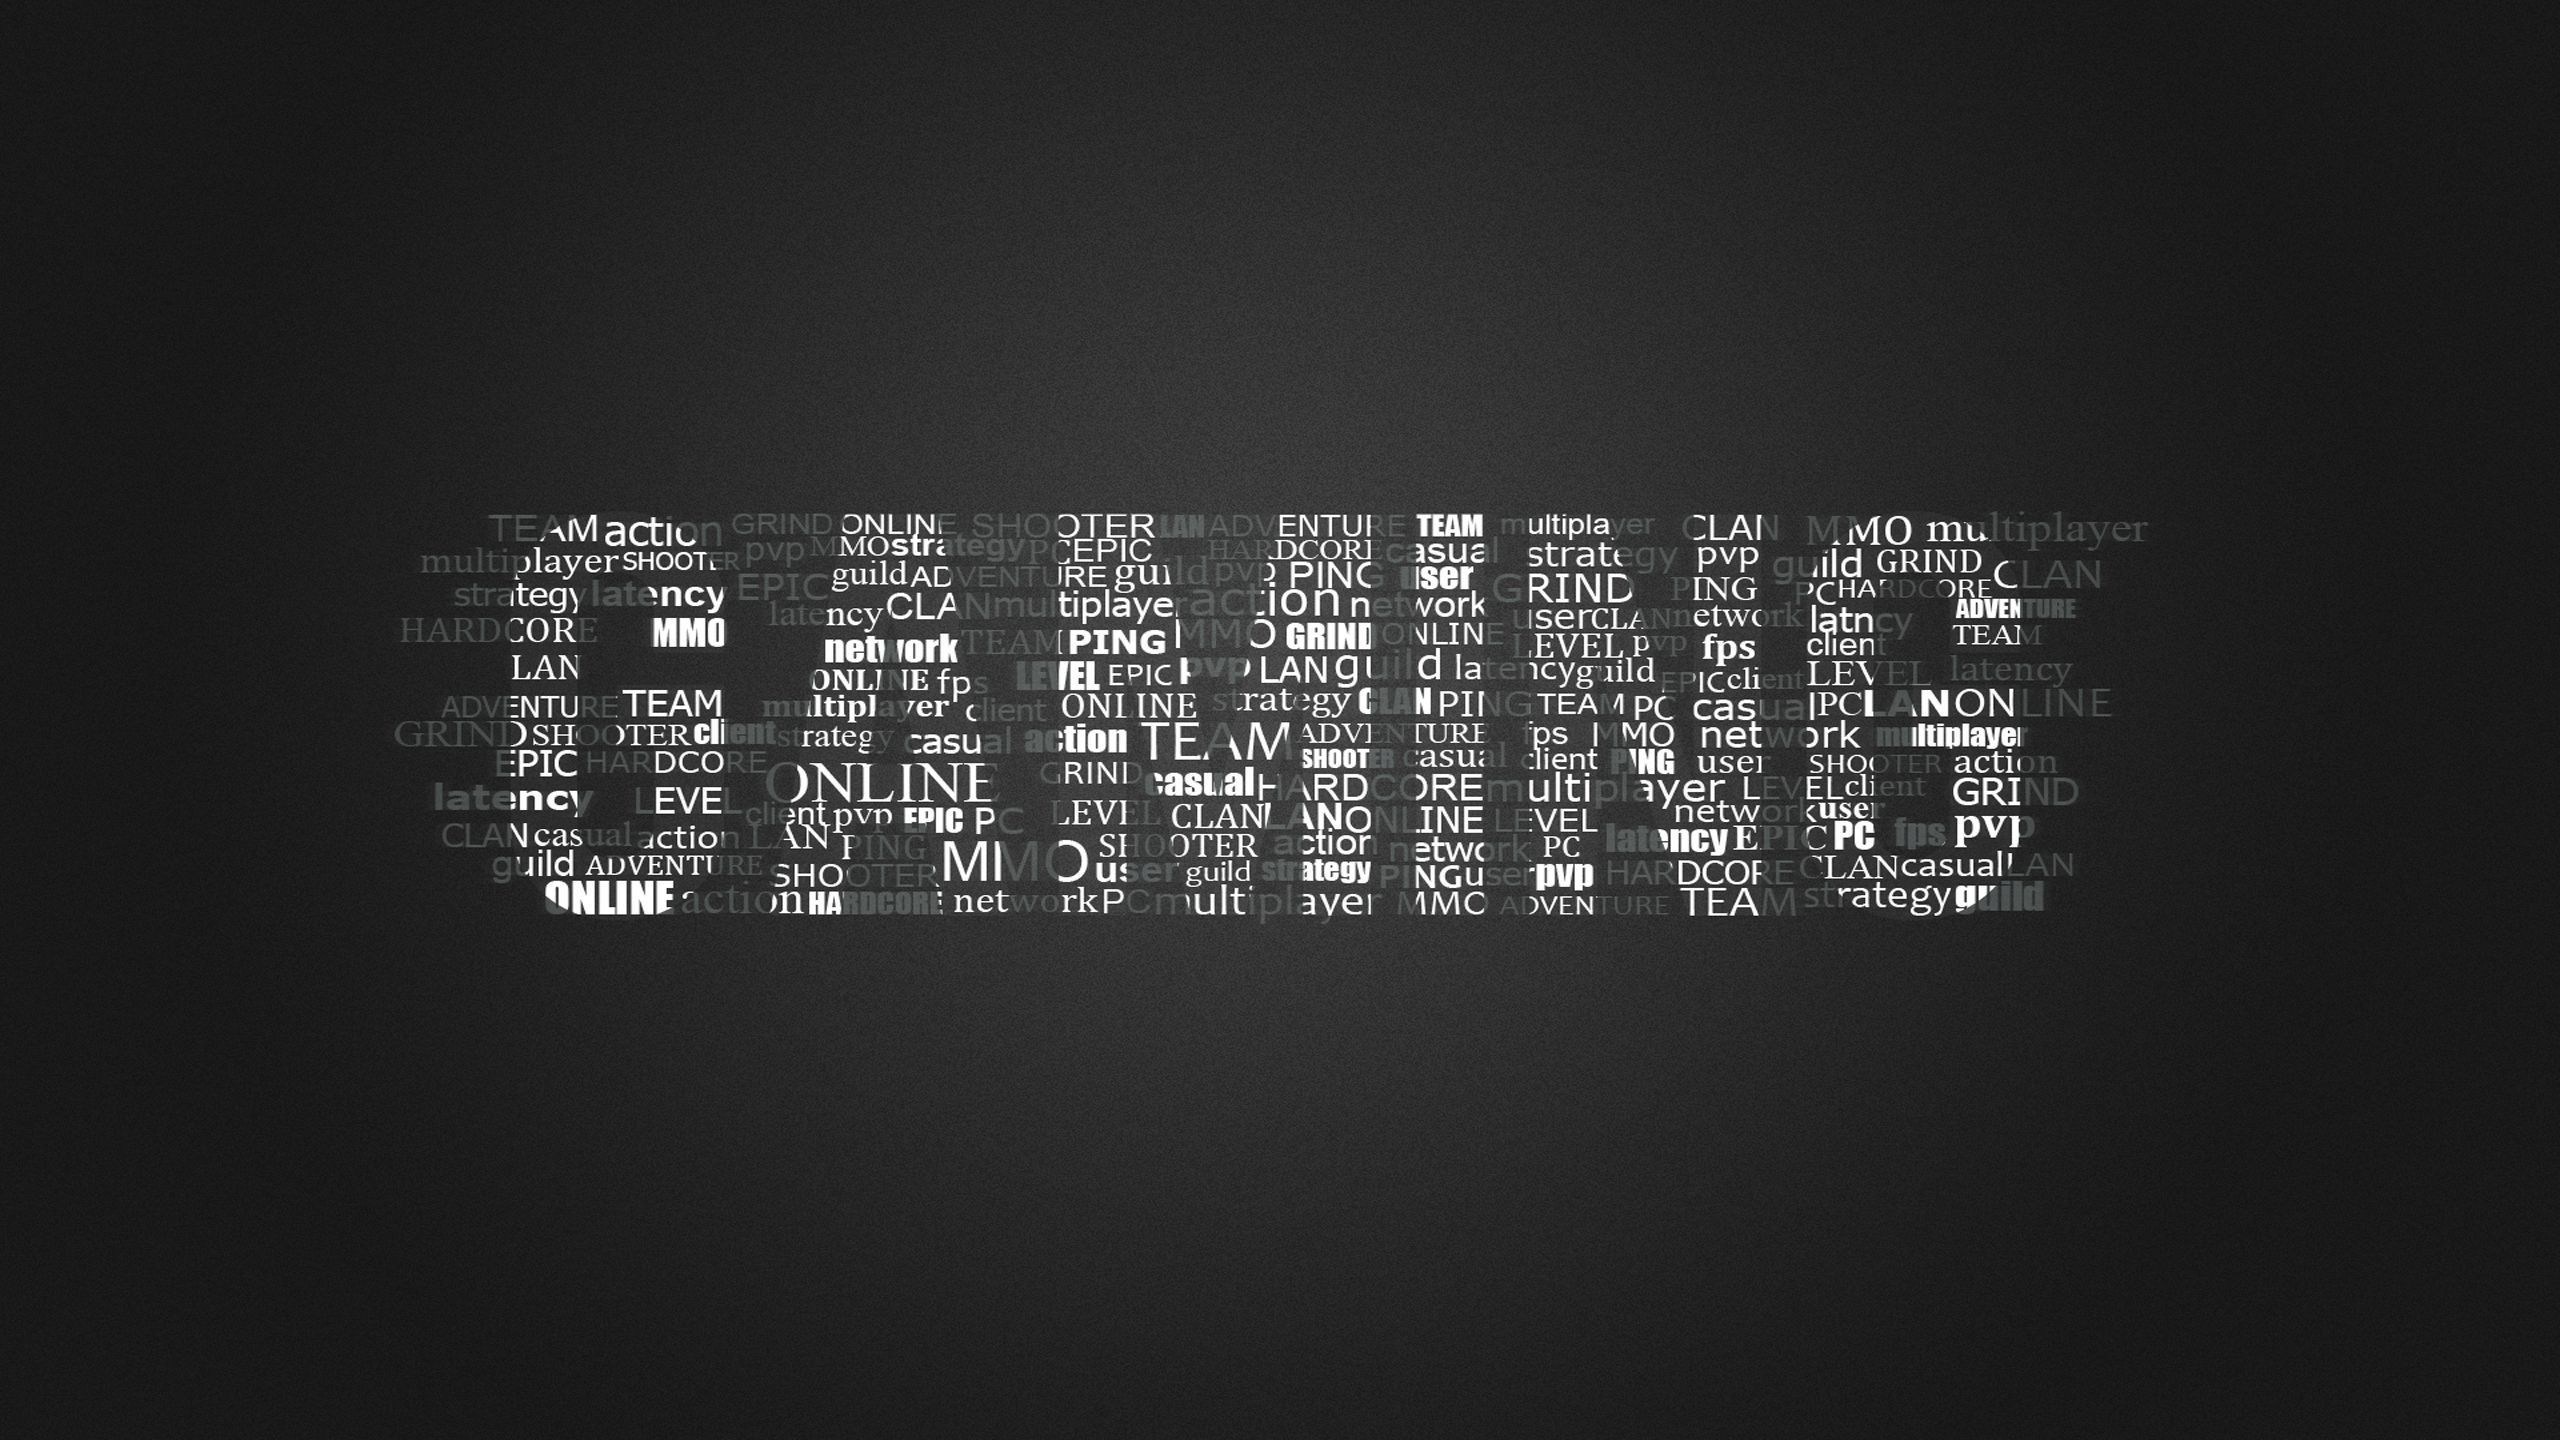 2560x1440 Wallpaper Gaming Gaming Wallpapers Best Gaming Wallpapers Wallpaper Pc